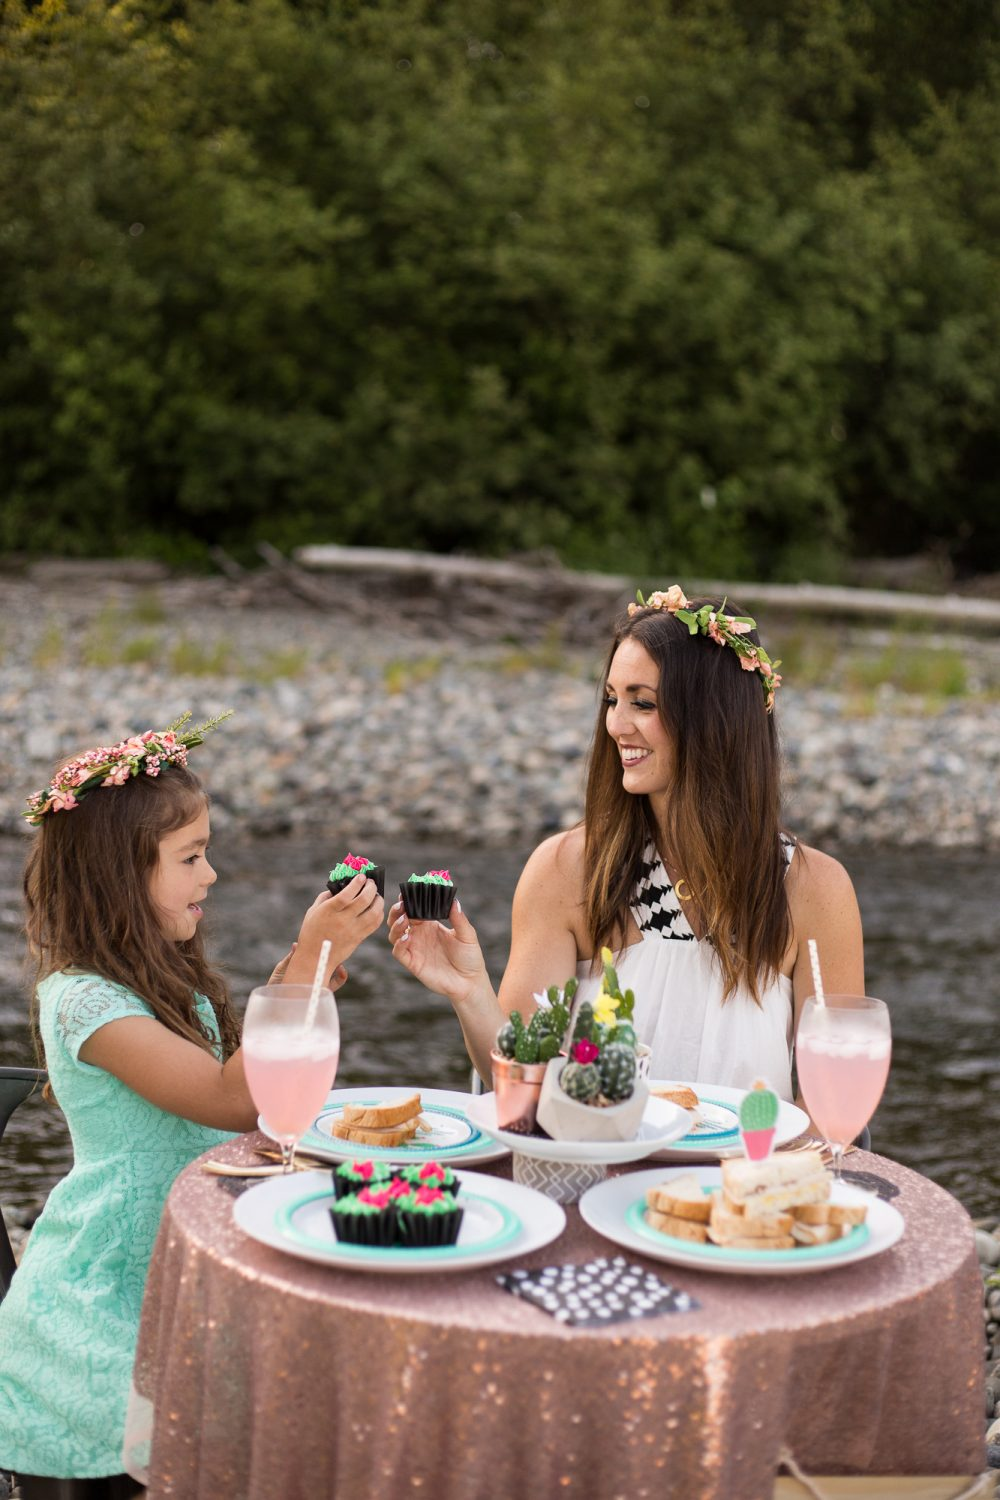 Mom and daughter tea party for two! Love this rose gold table cloth and cactus decor!